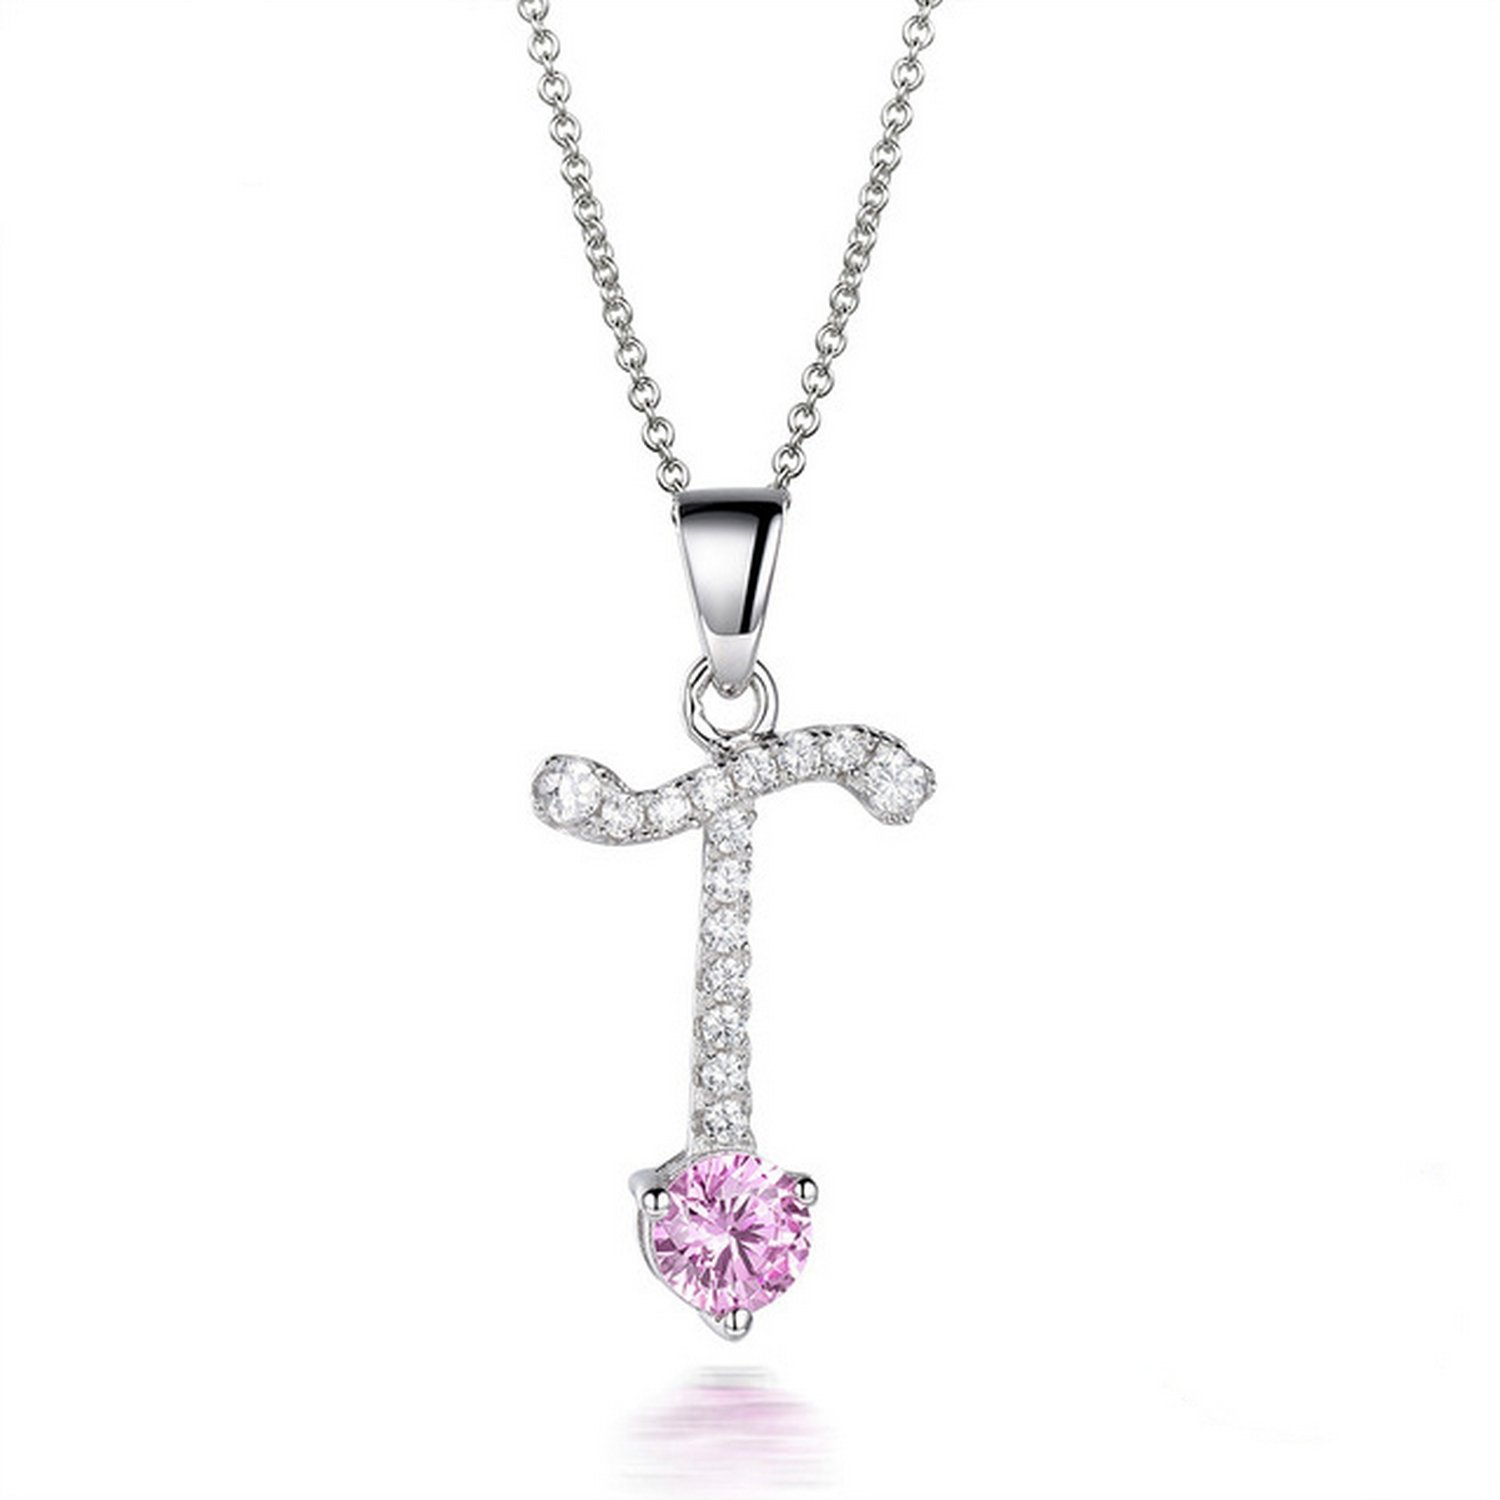 CS-DB Jewelry Silver Fashion White Pearls Chain Charm Pendants Necklaces